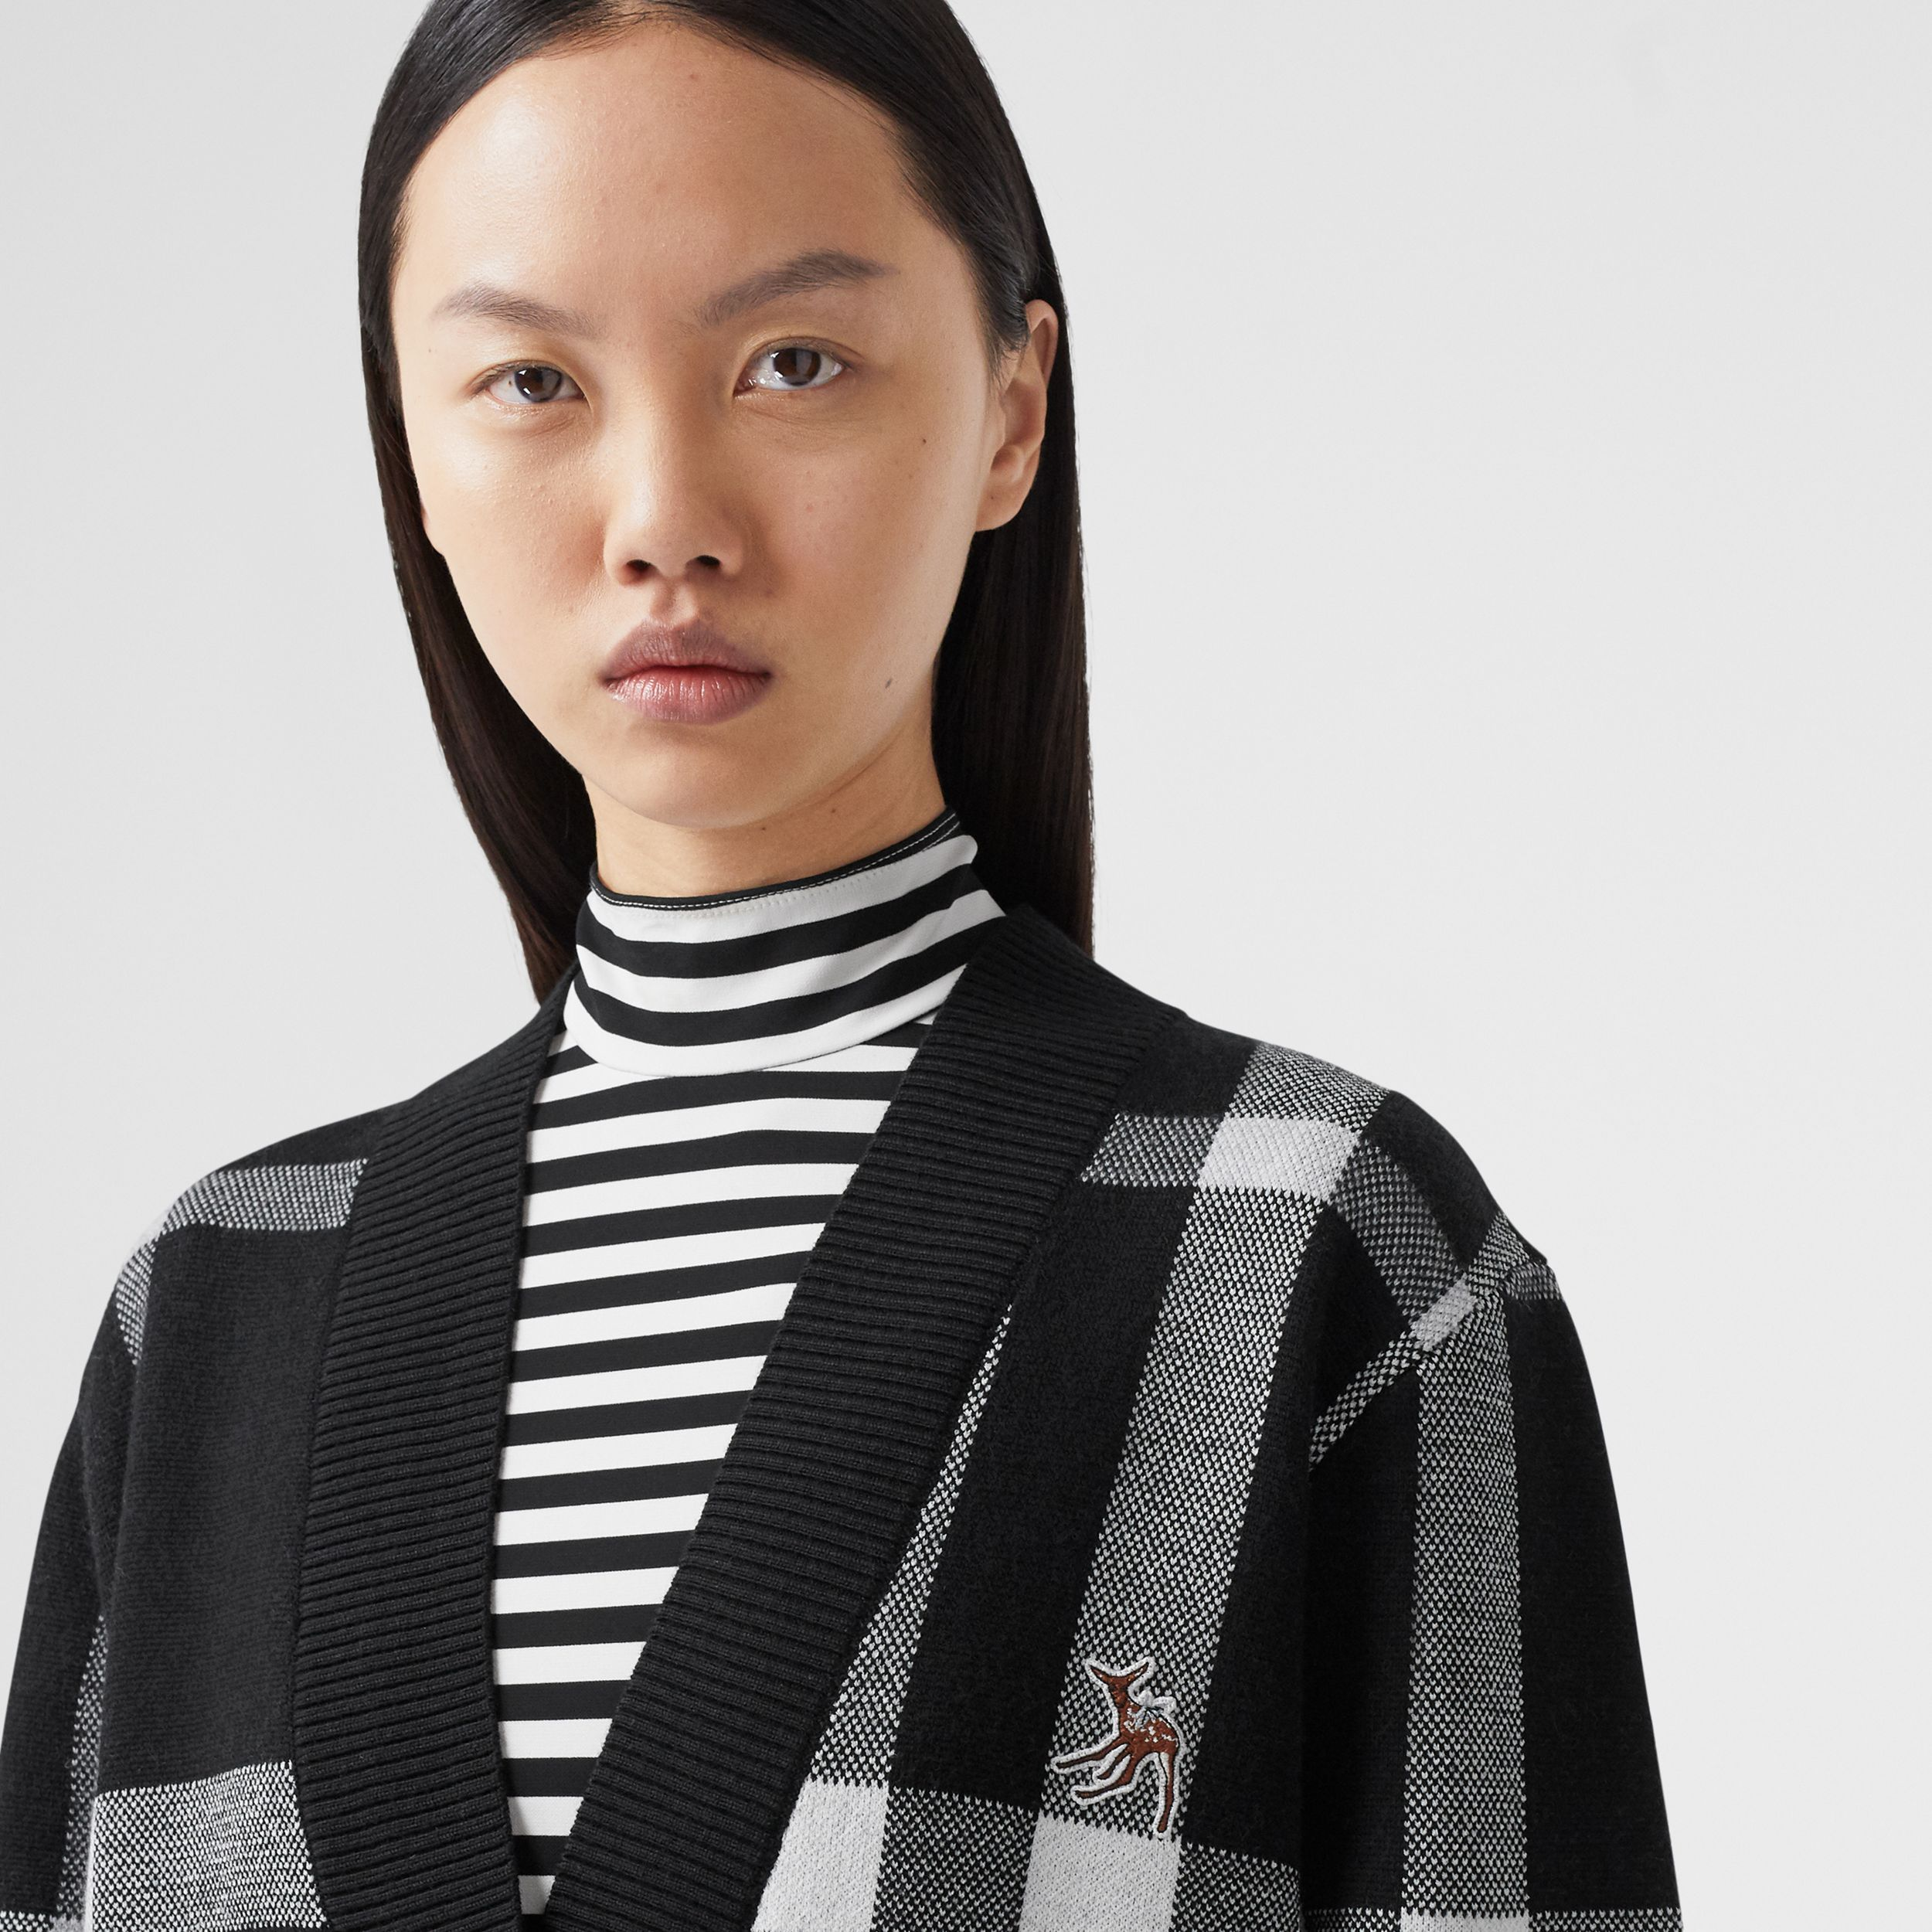 Deer Motif Check Wool Blend Jacquard Cardigan in Black - Women | Burberry - 3